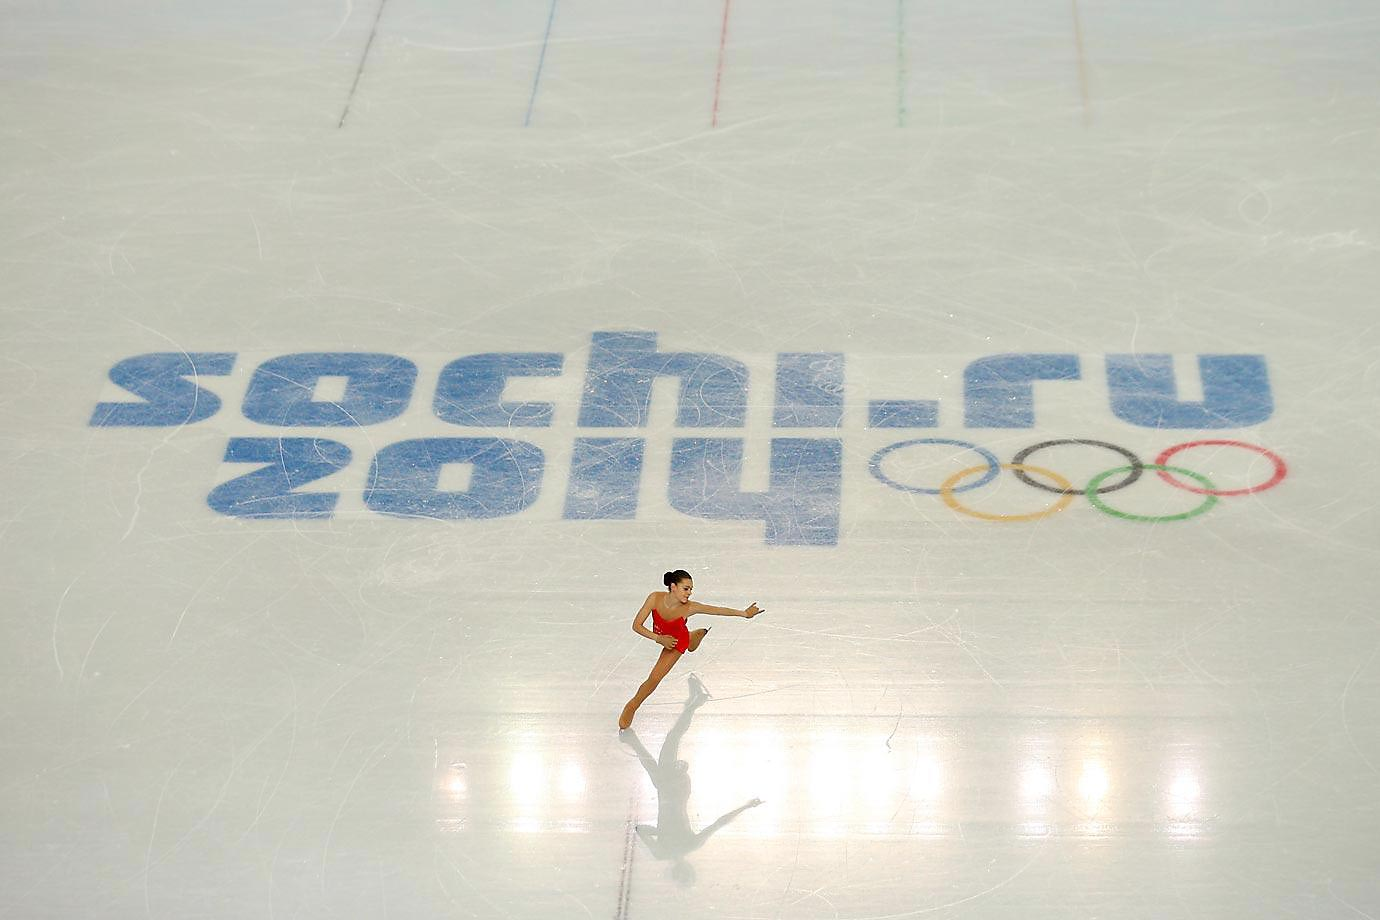 Adelina Sotnikova of Russia during the short program at the Sochi Olympics.